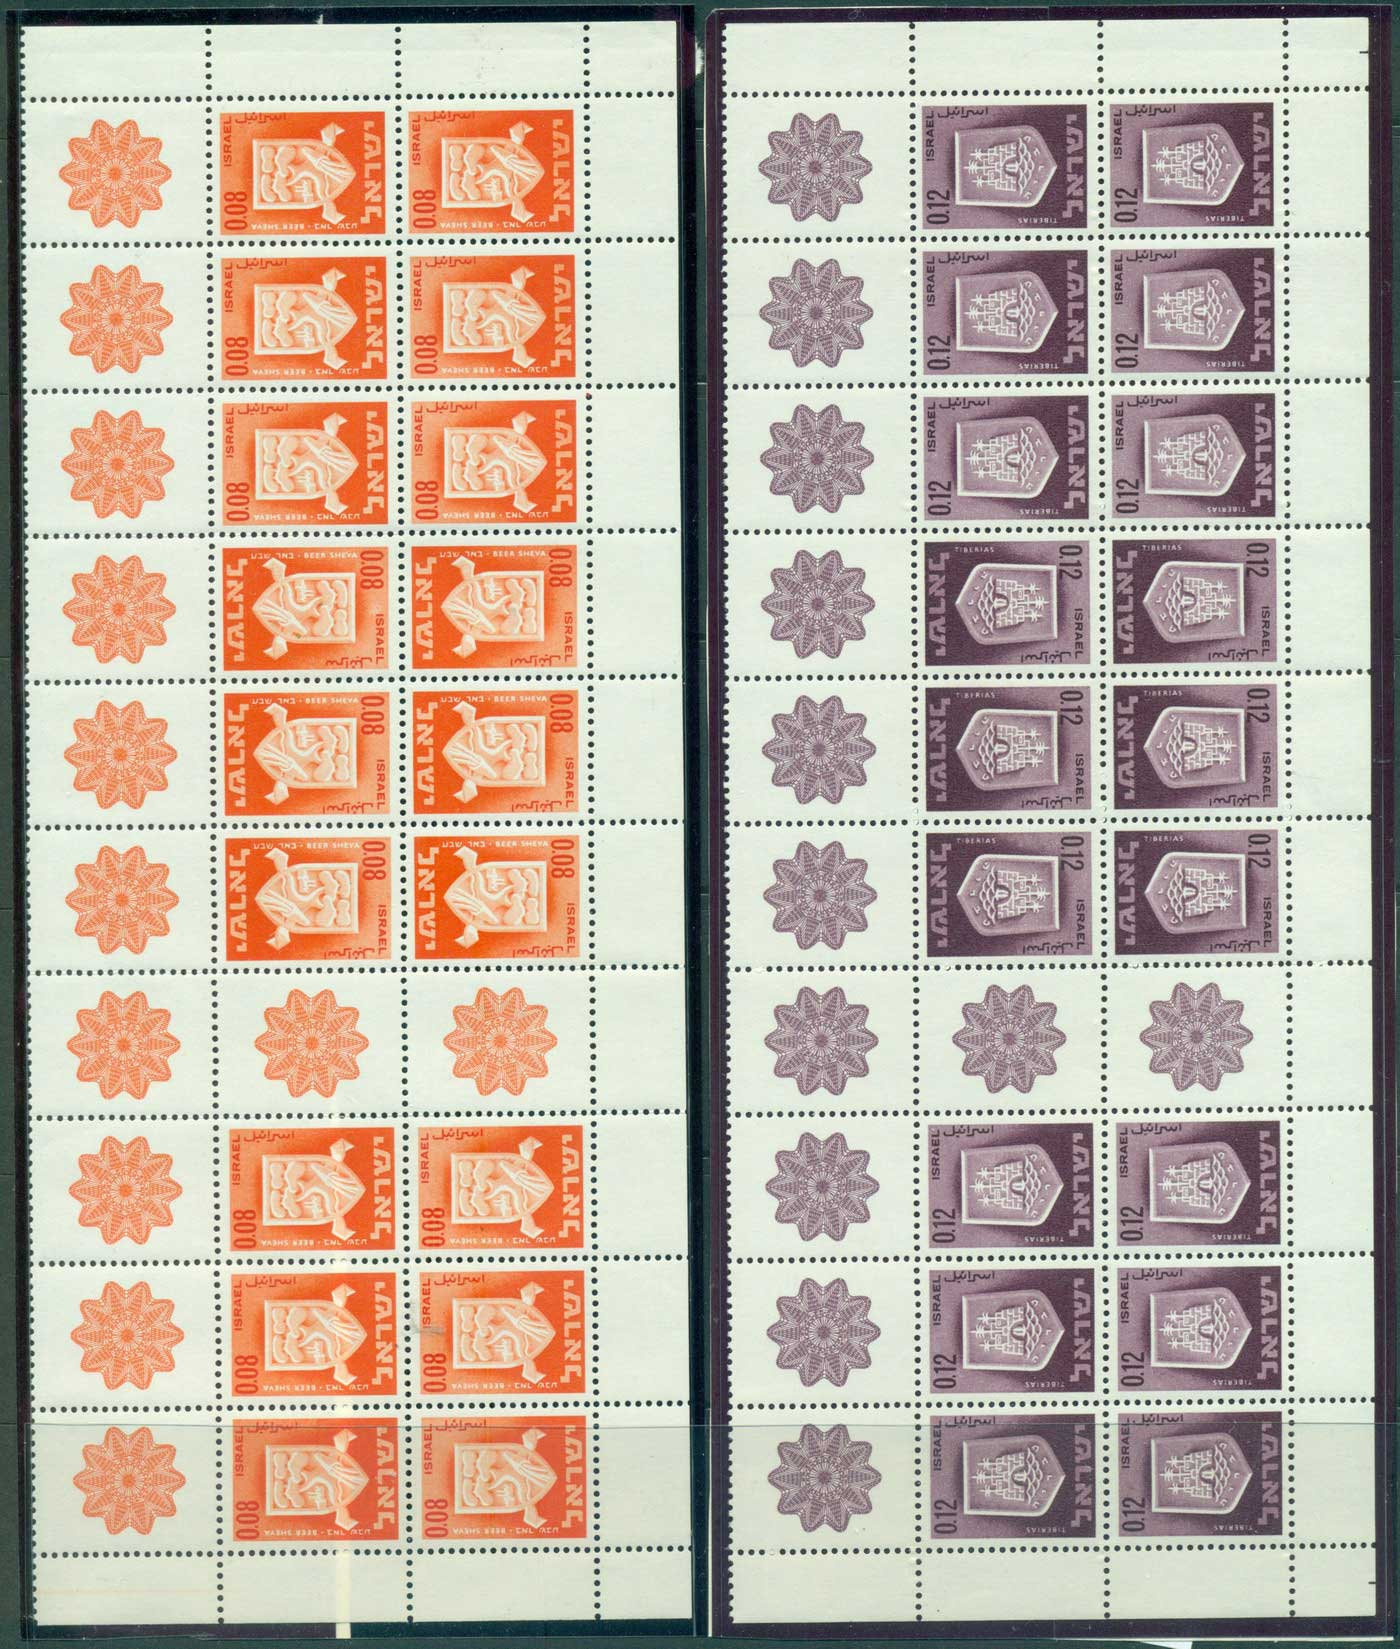 Israel 1965-66 Town Emblems 08, 12 a panes MUH FU lot31551